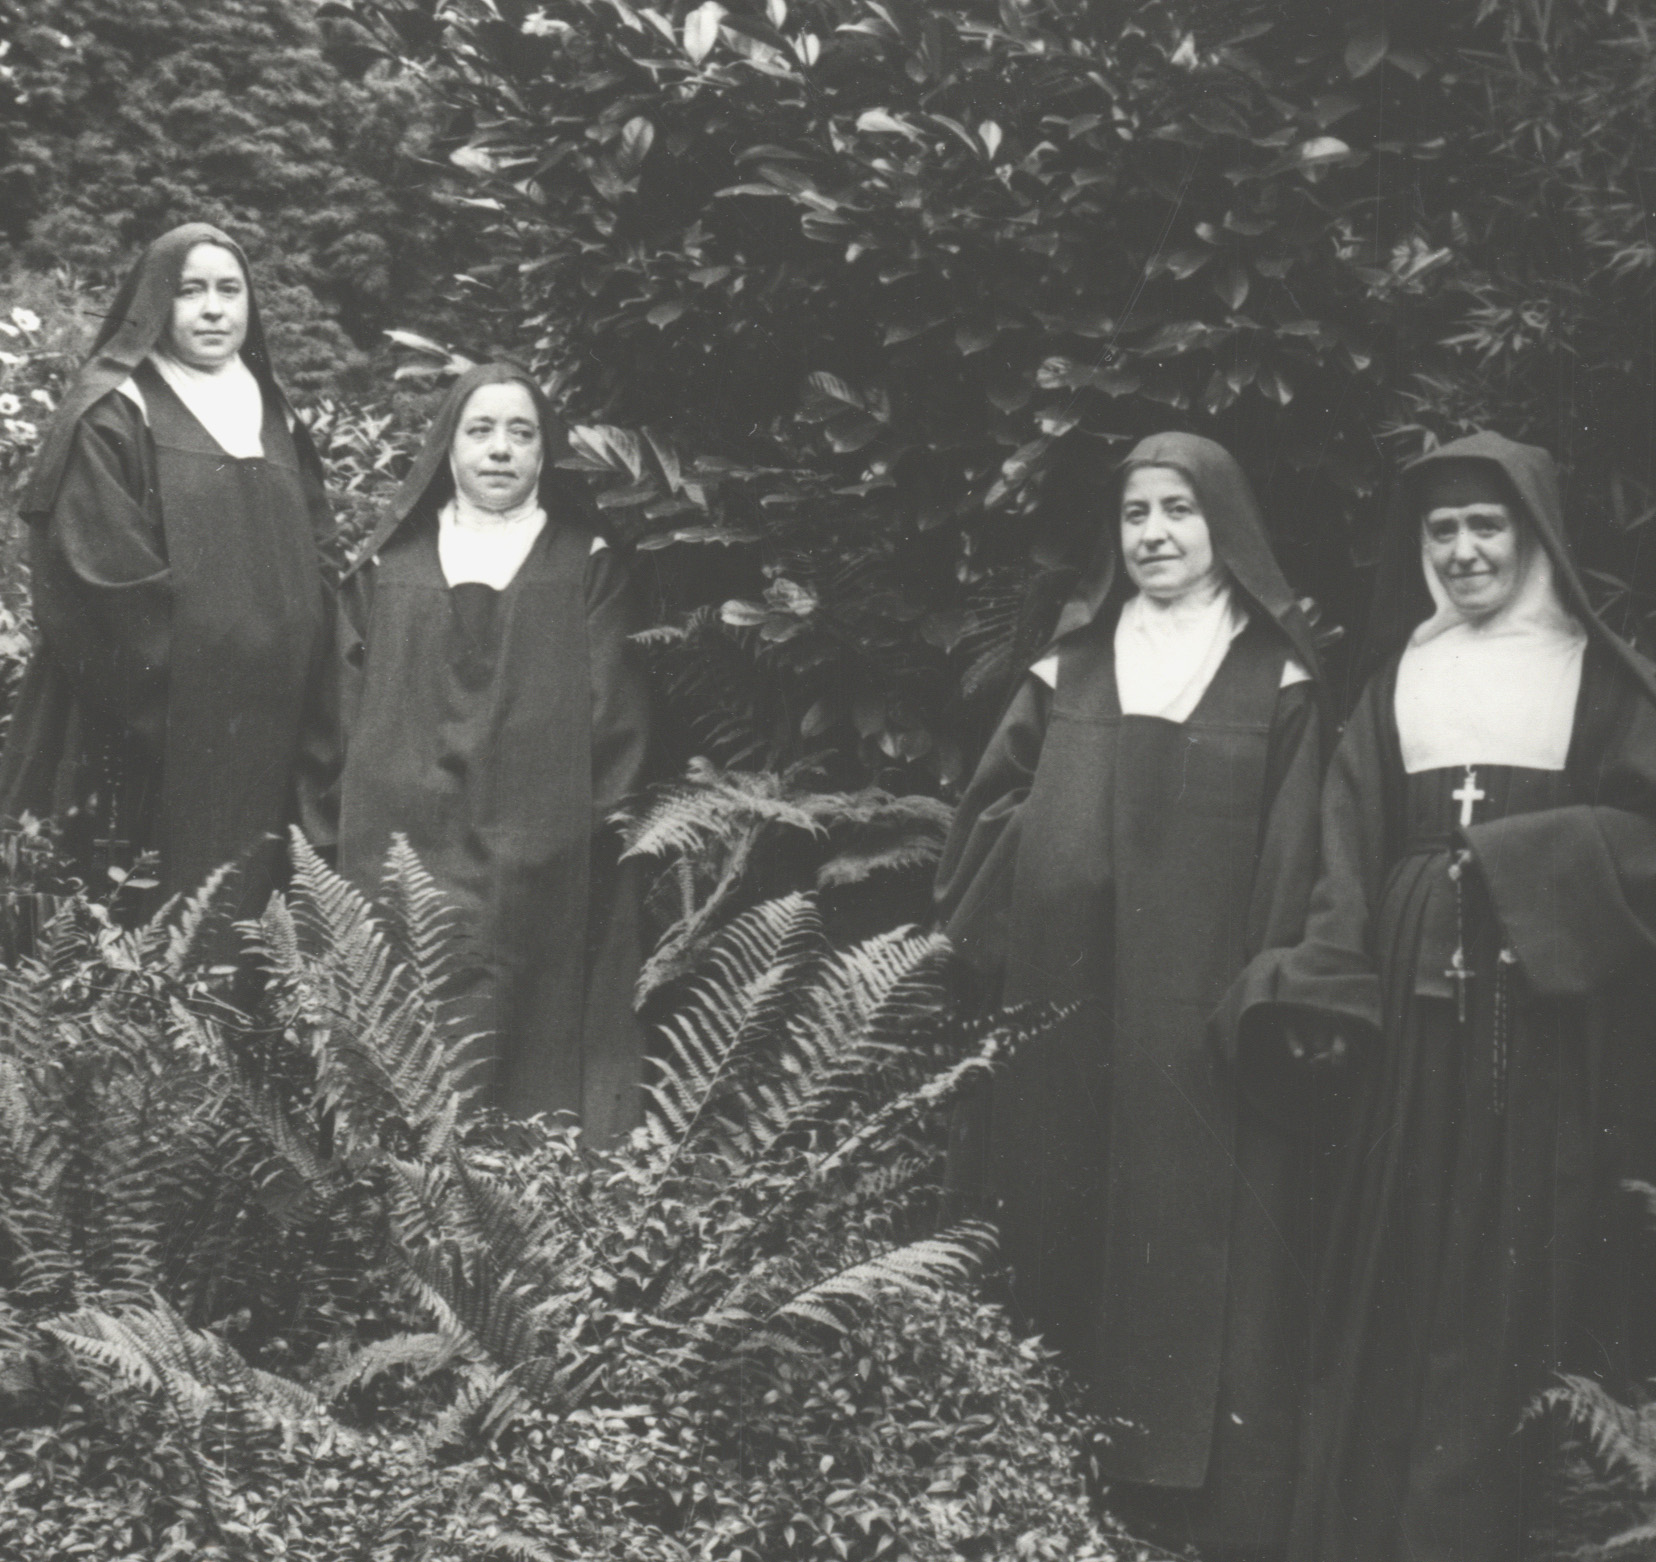 Saint Therese of Lisieux: The Way of Love (Encounter the Saints Series,16) by G